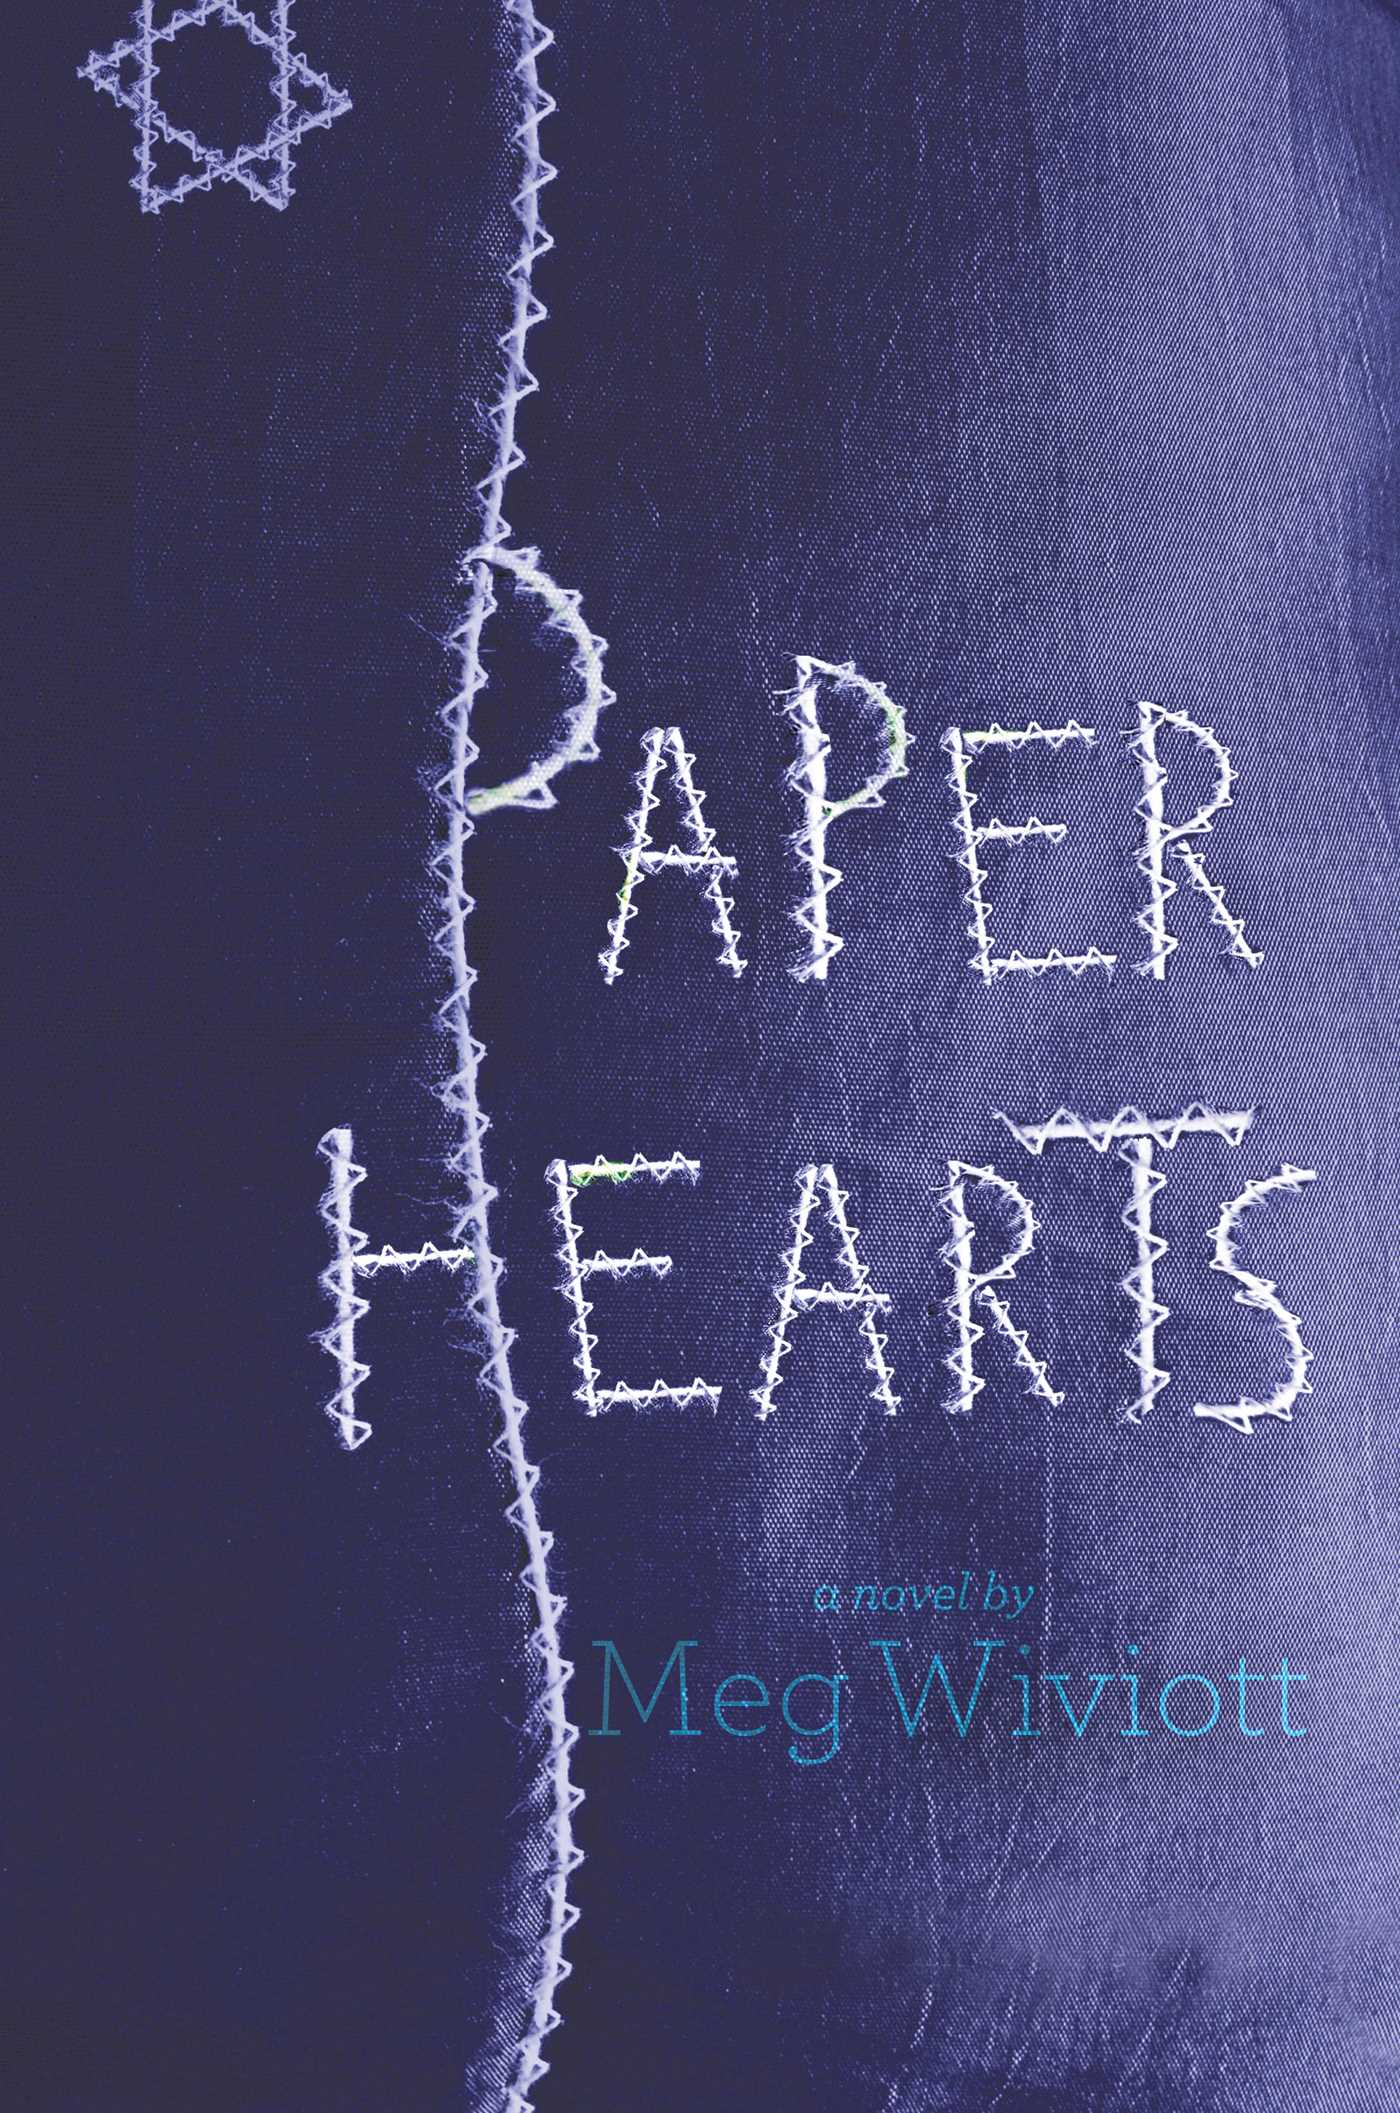 Paper hearts 9781481439831 hr